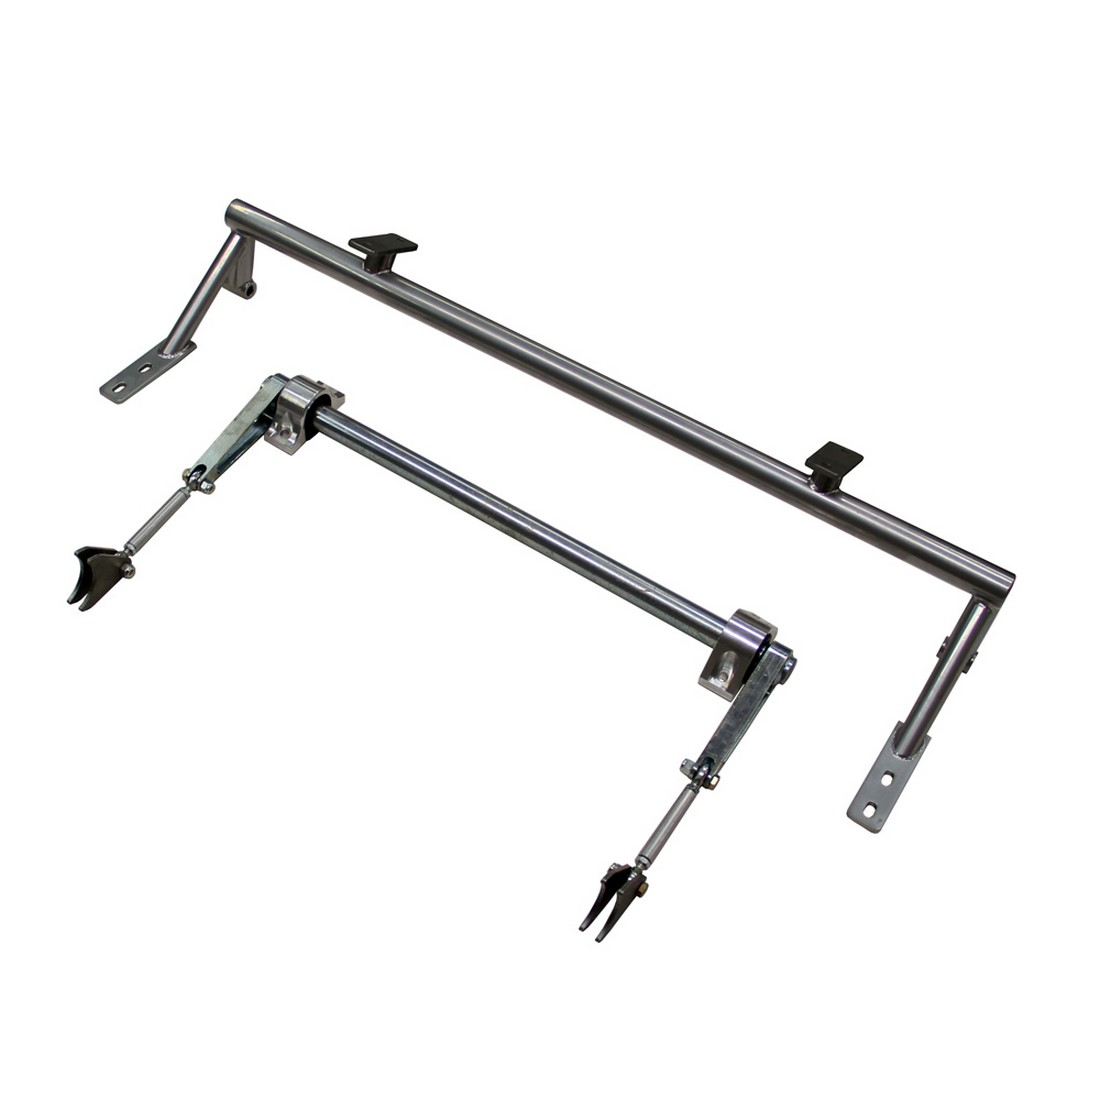 Anti-Roll Bars